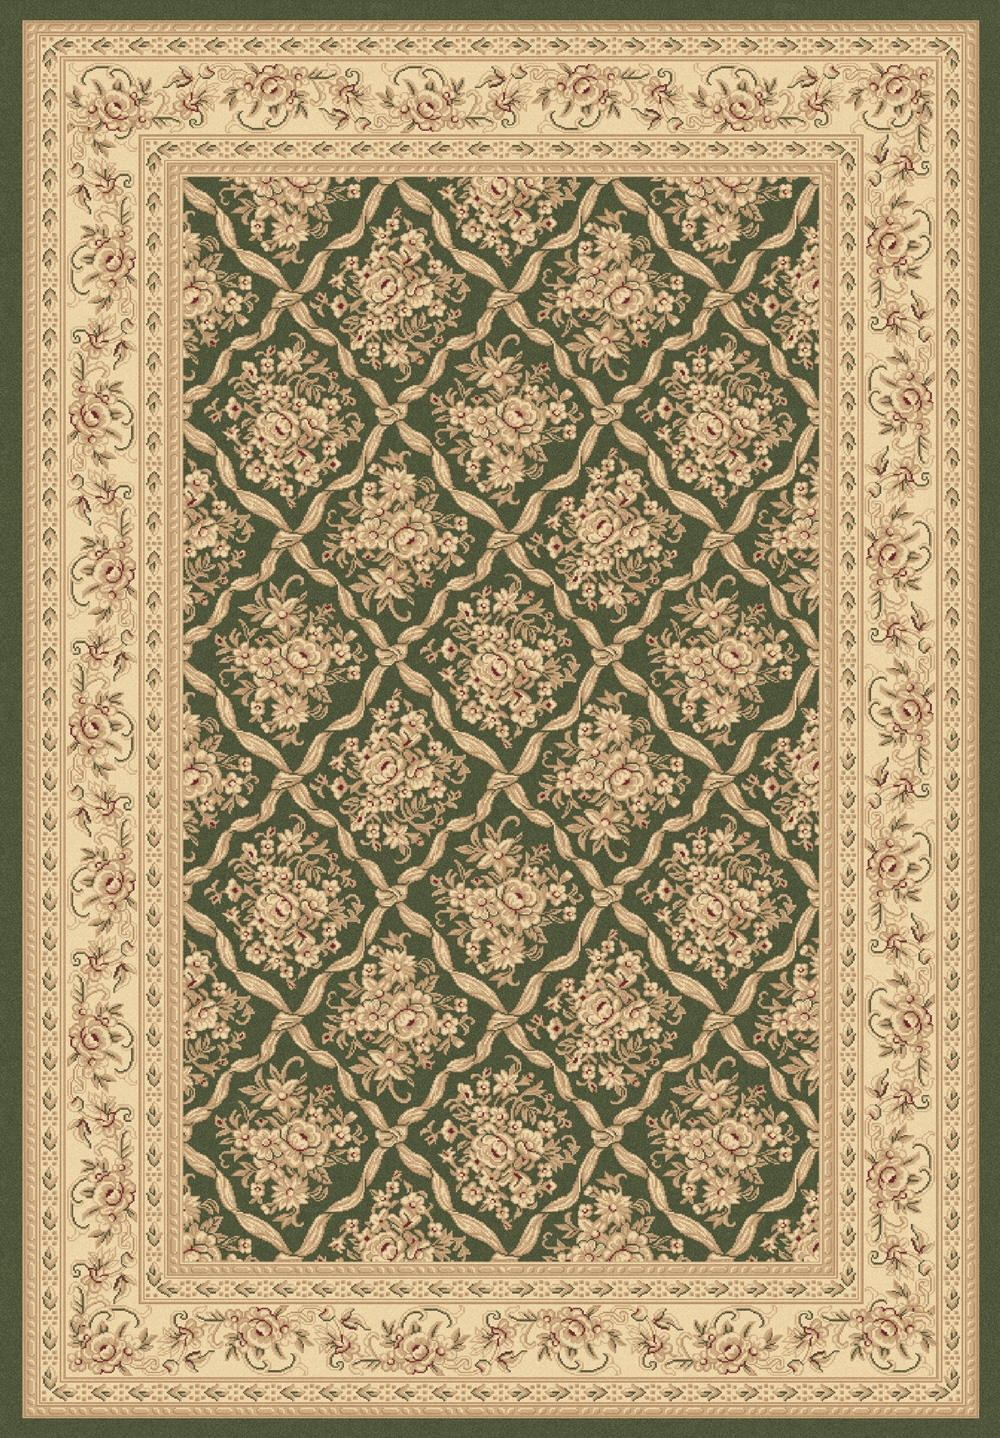 Green 58018 440 Legacy Rug By Dynamic